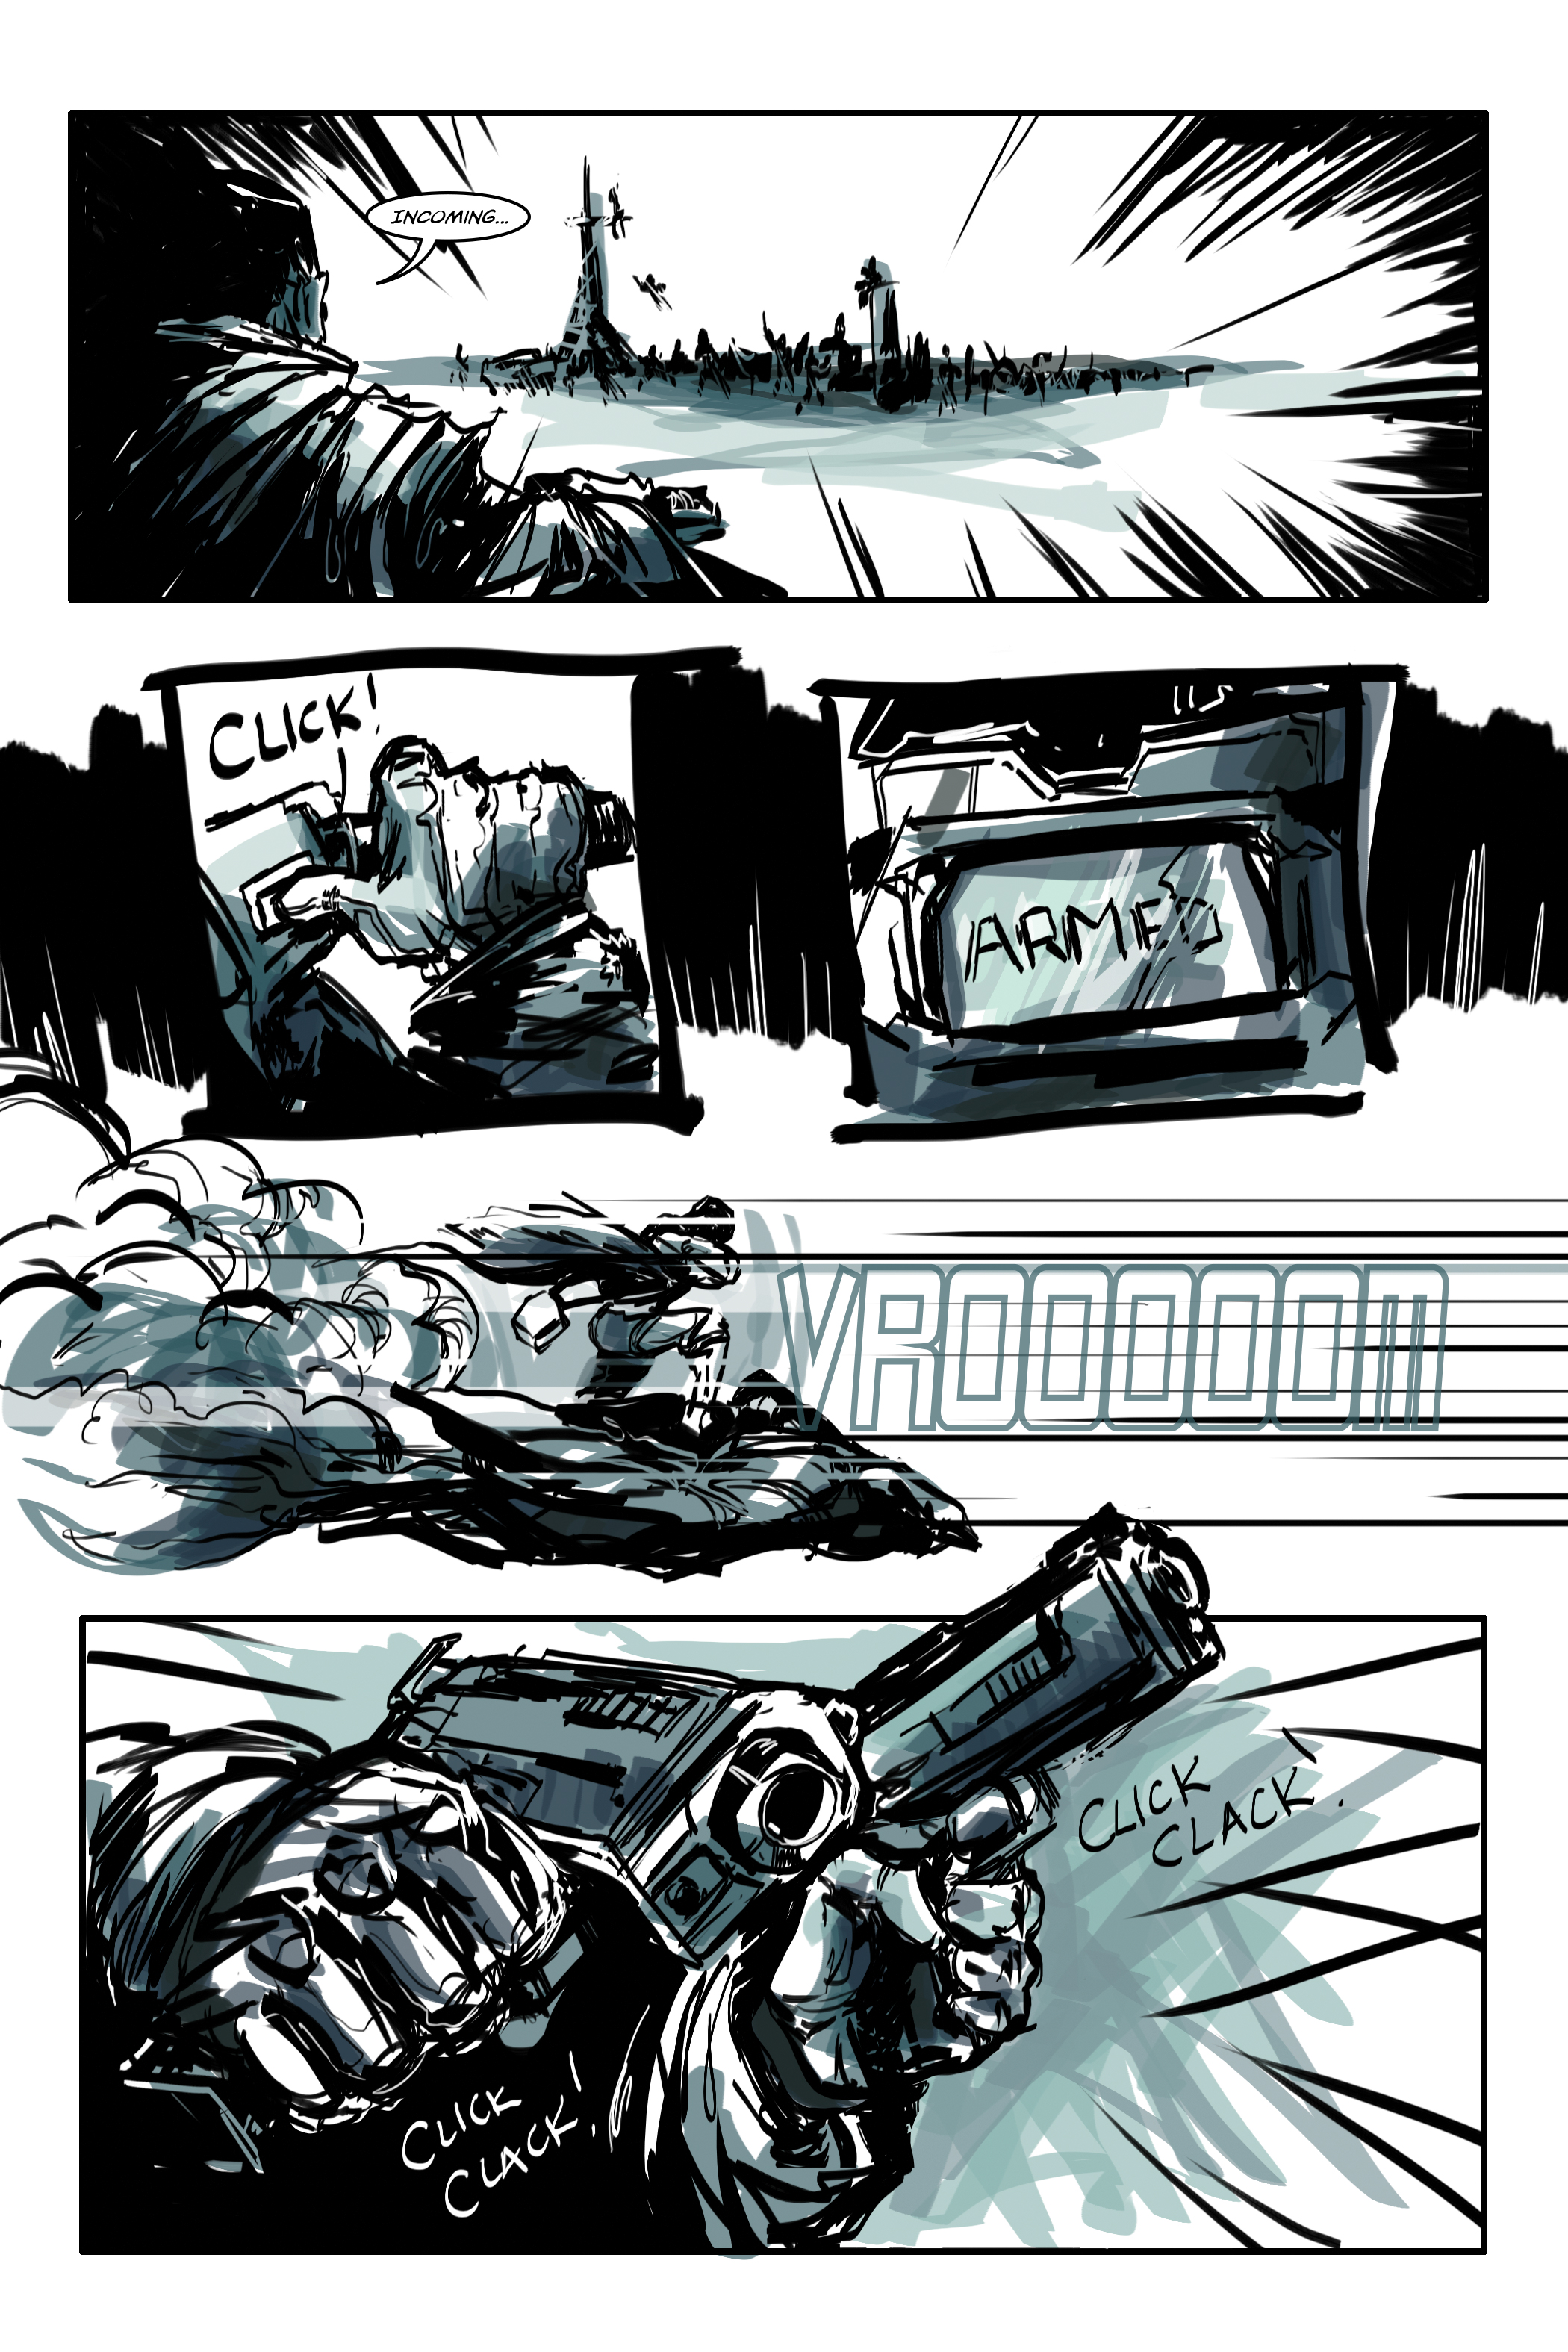 White Cell Inoculation #1 - Preview 2